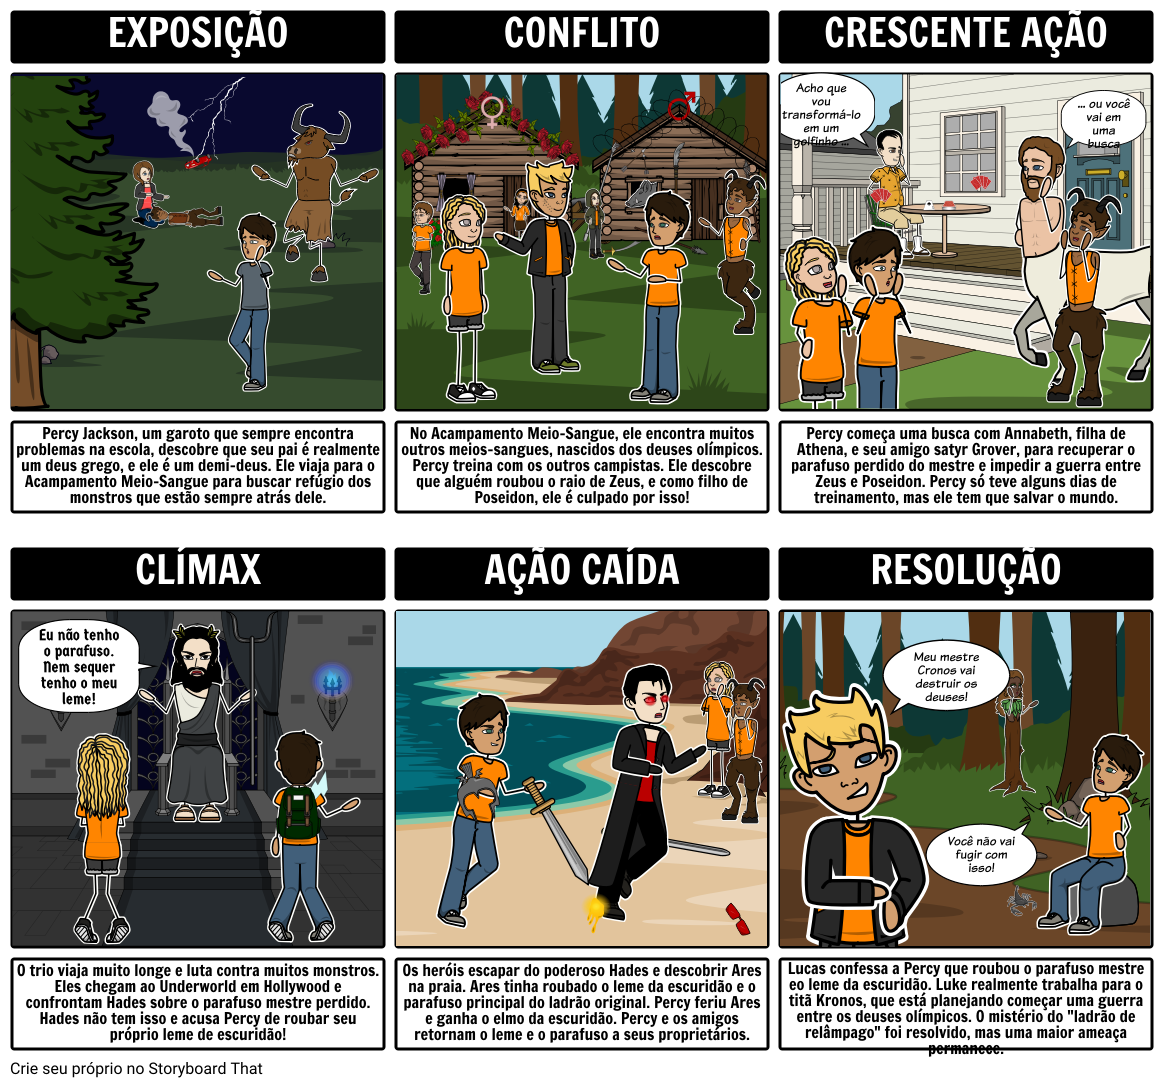 Diagrama do Enredo do Ladrão do Relâmpago